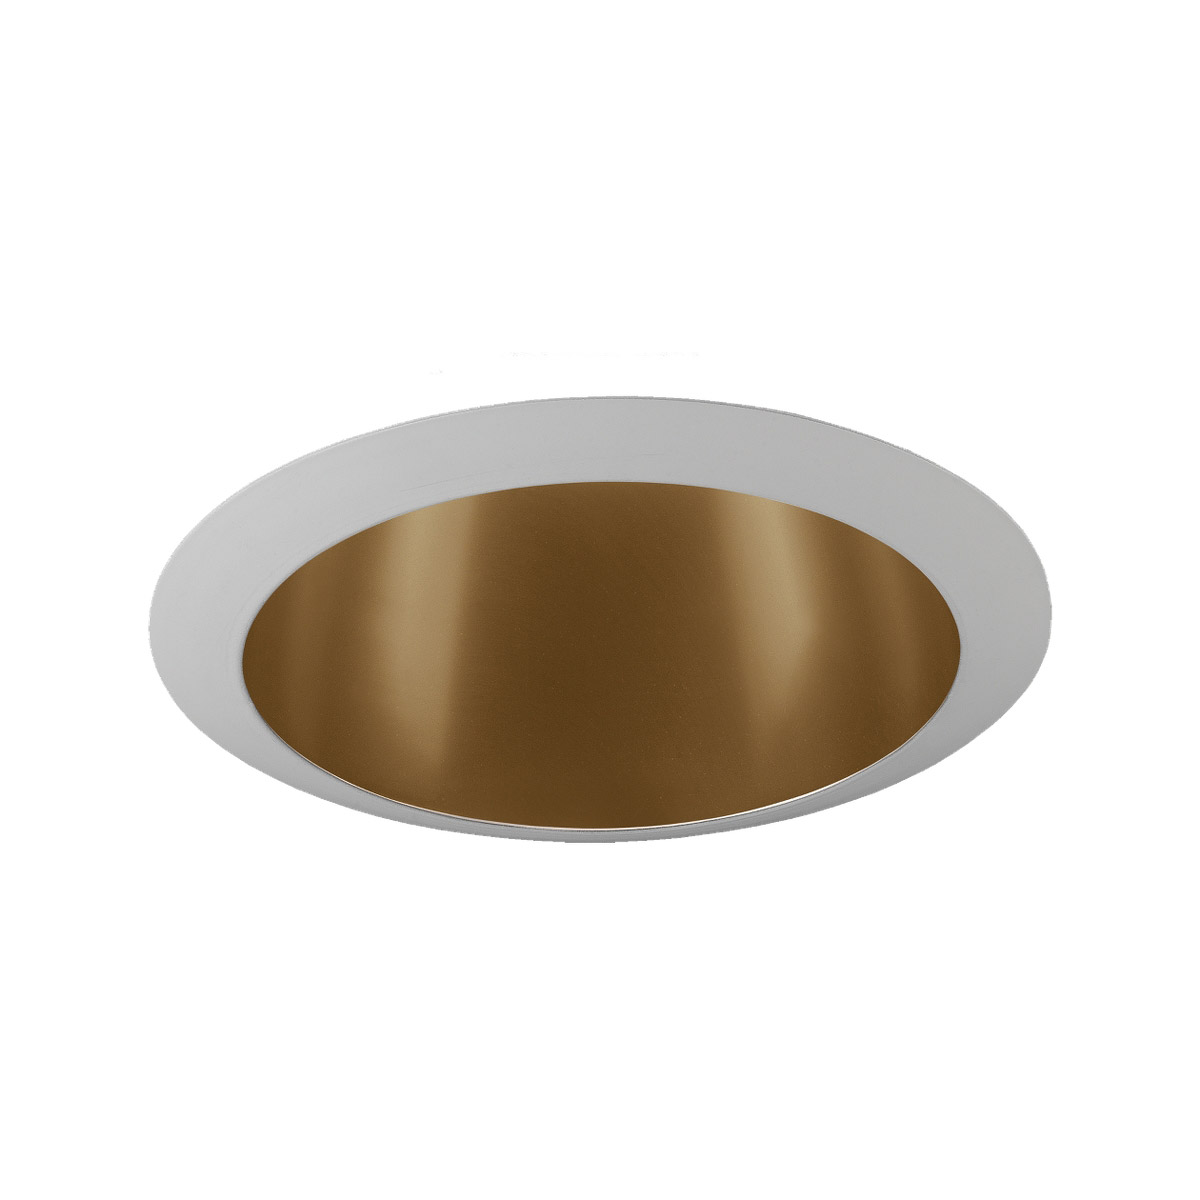 Sea Gull Lighting Signature Recessed Trim Only in Antique Bronze 11032AT-172